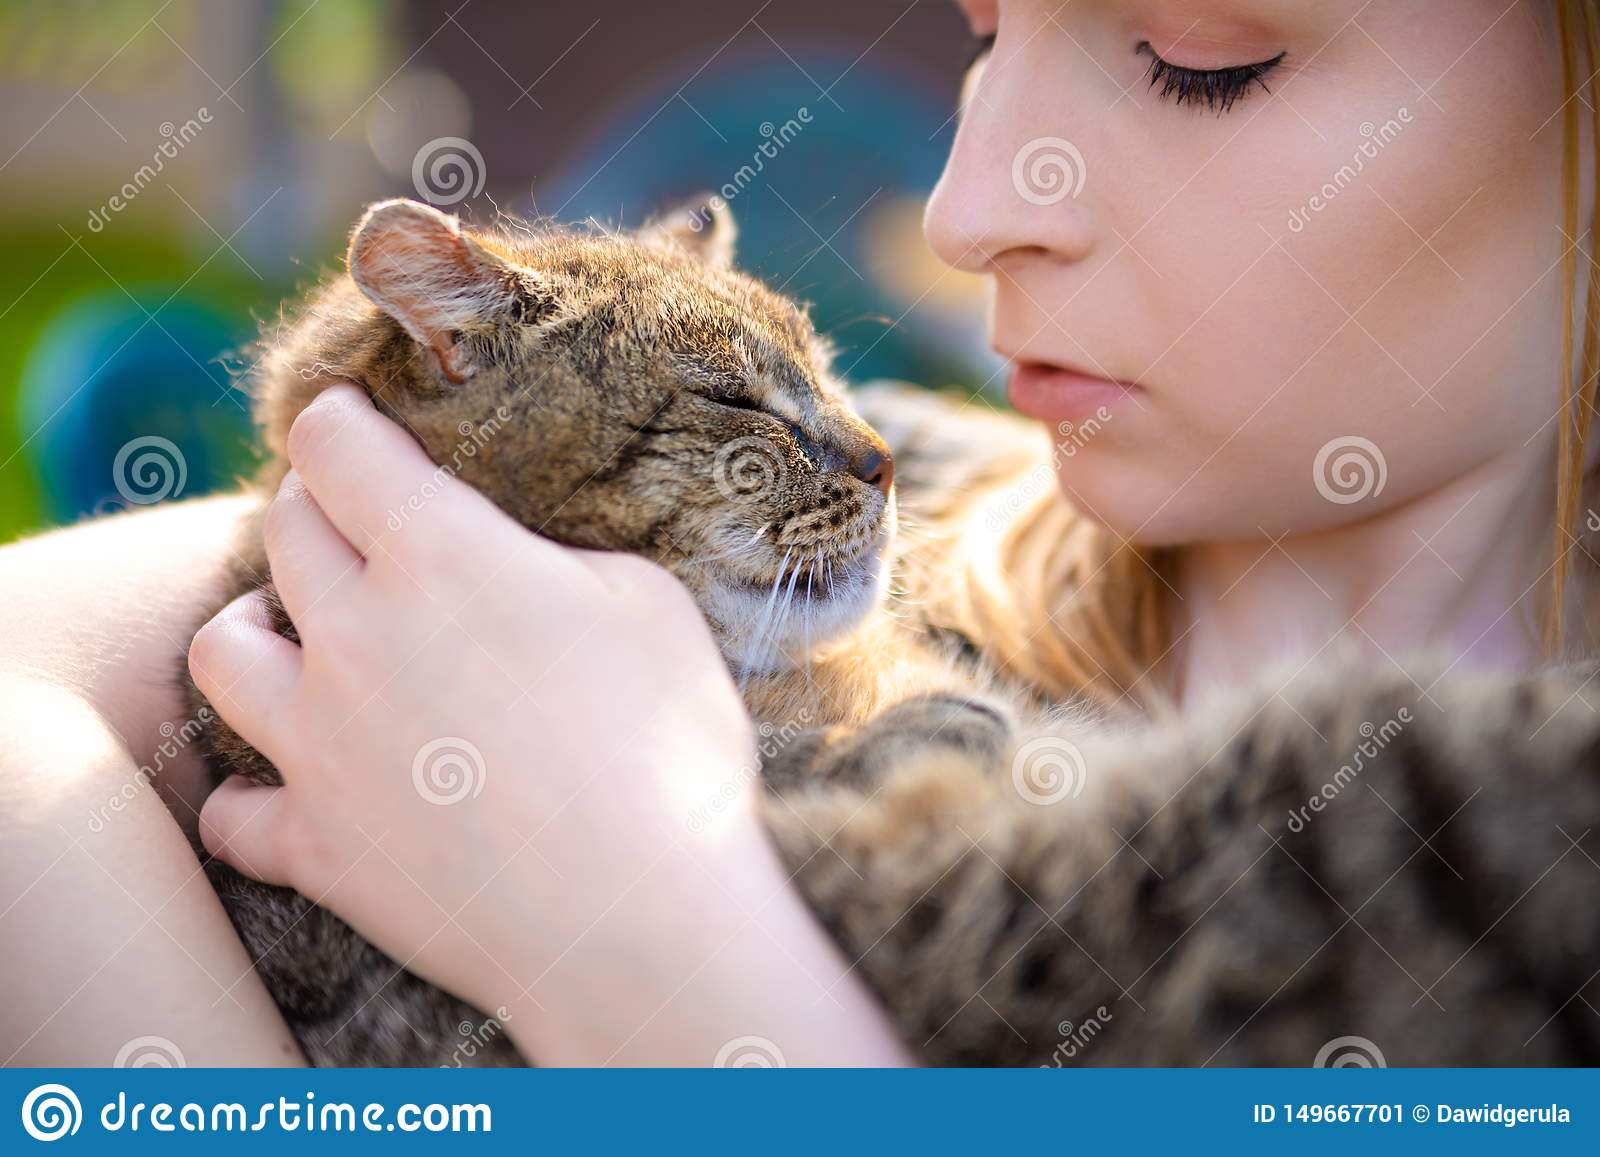 Portrait of young woman holding a cat in her arms. Pretty lady holding little sweet, adorable kitten